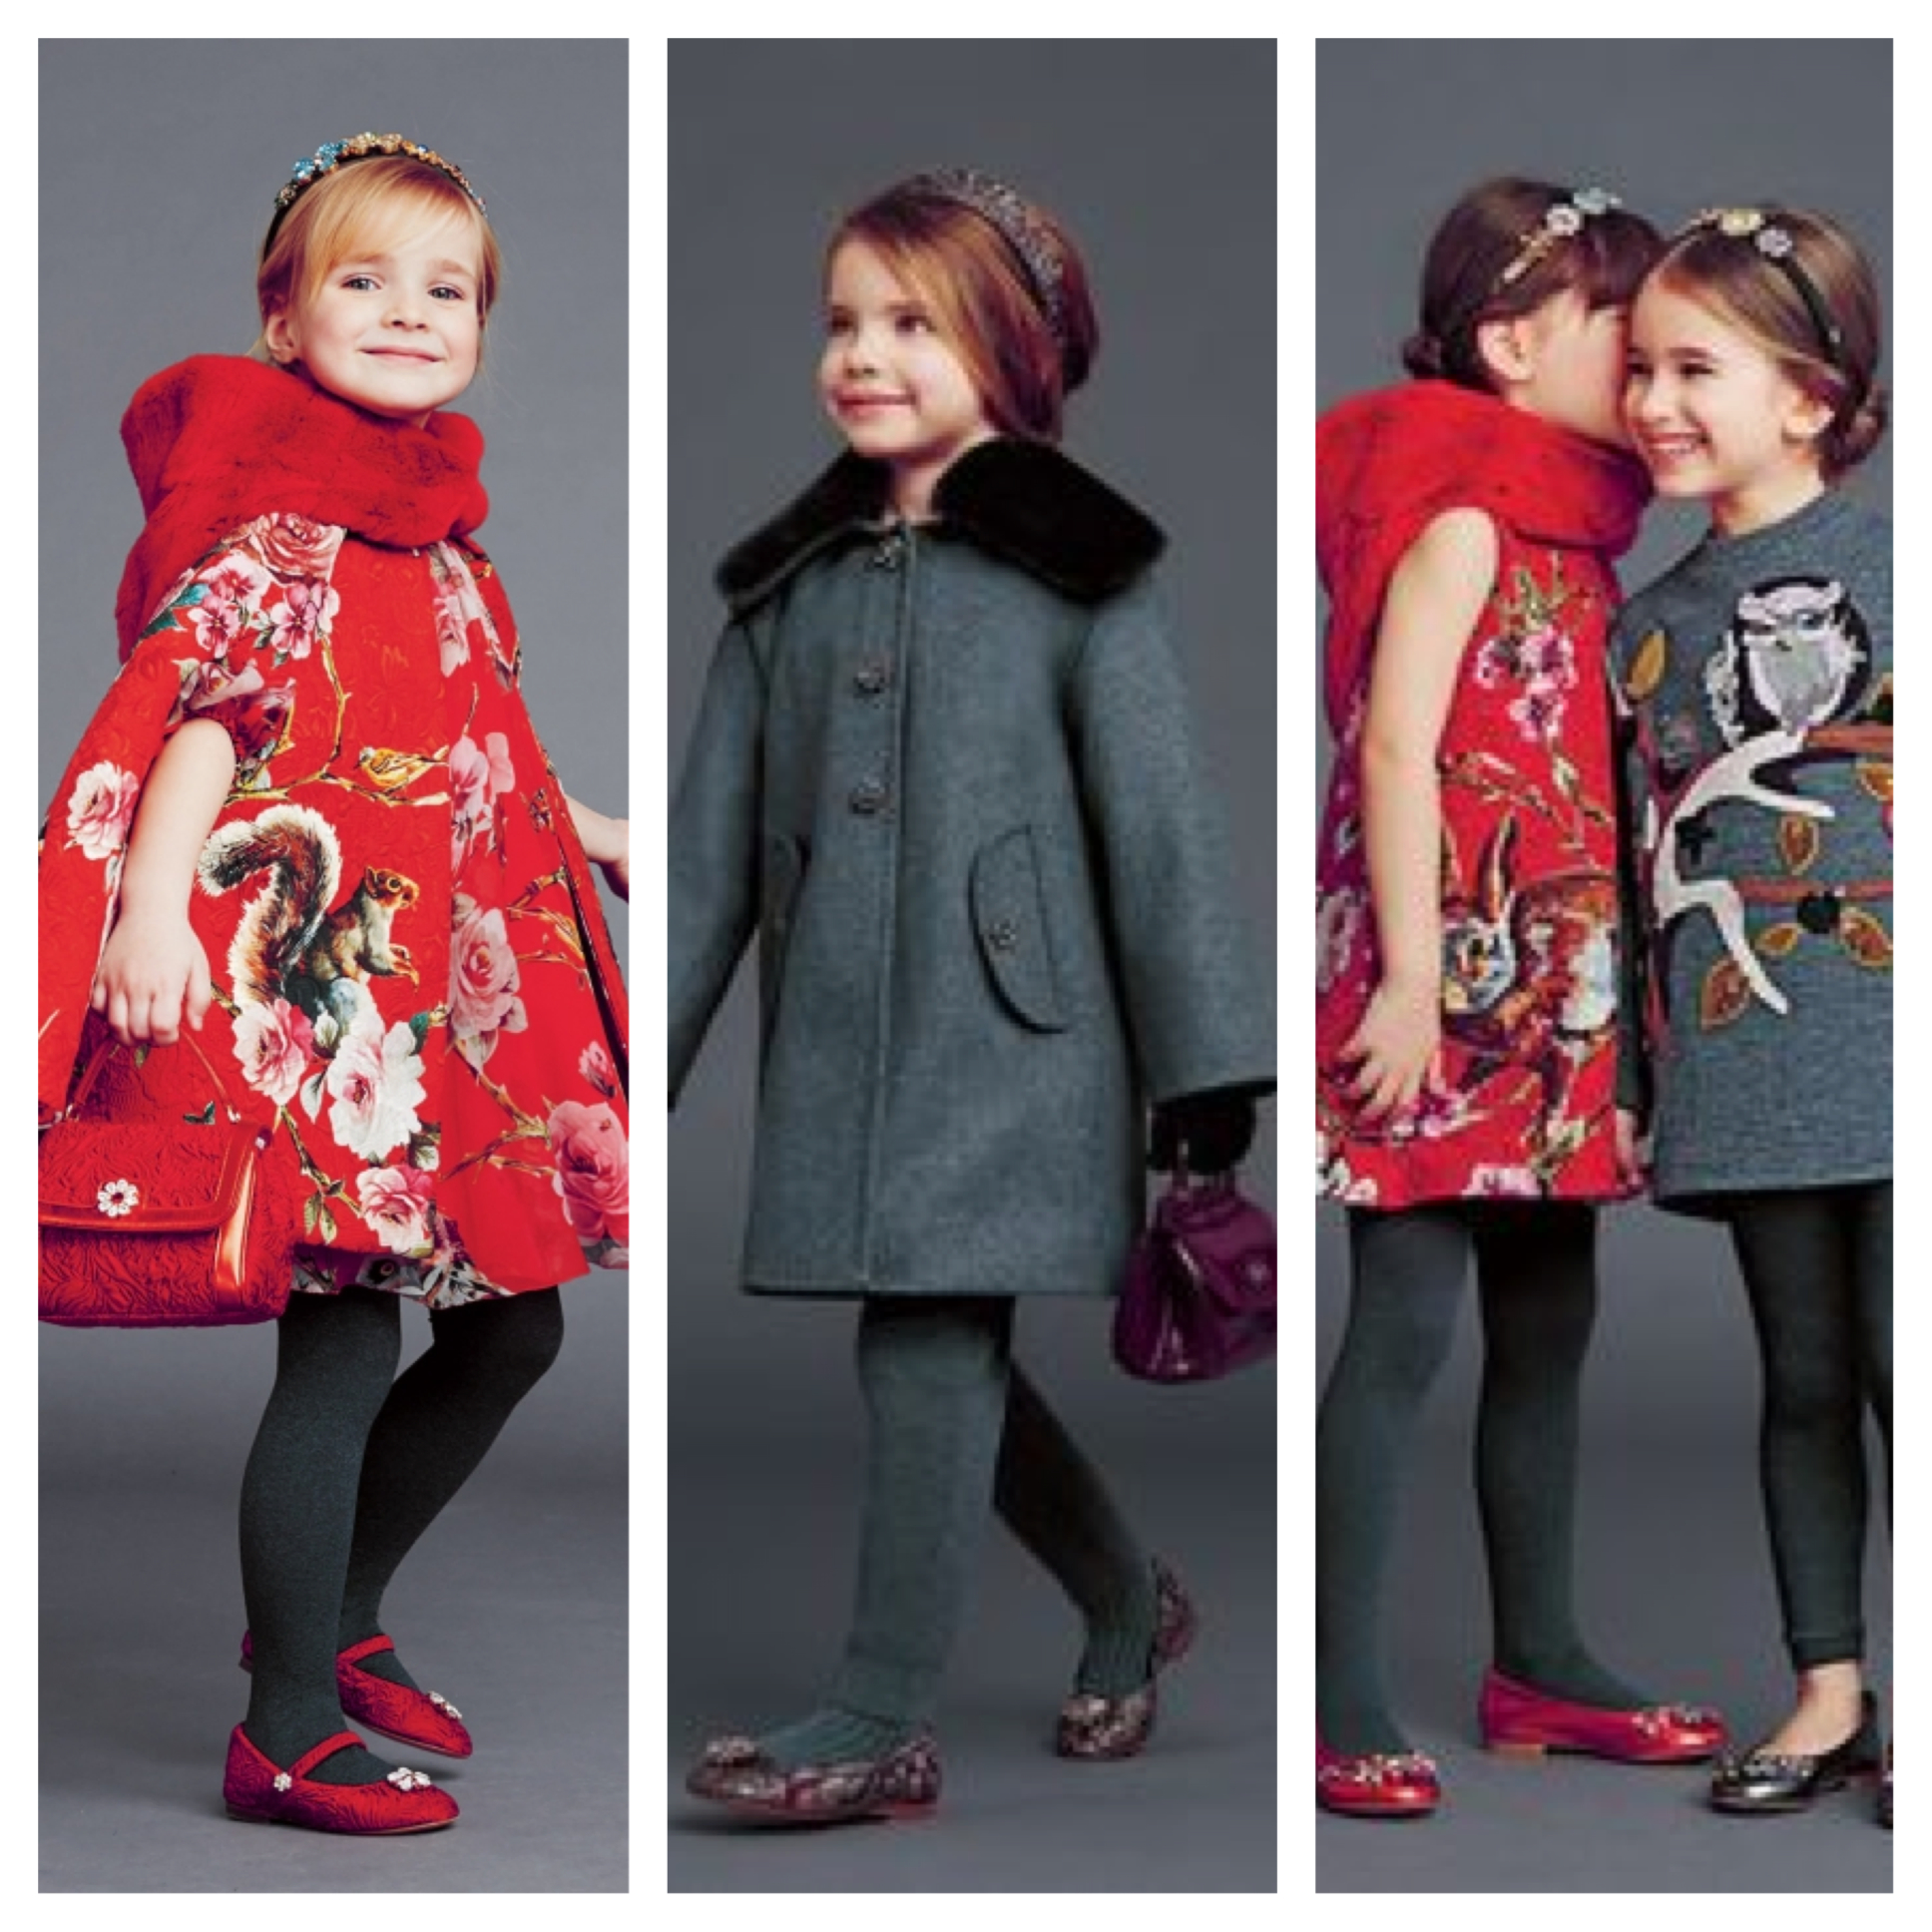 Dolce & Gabanna kids fall/winter 2014-15 collection